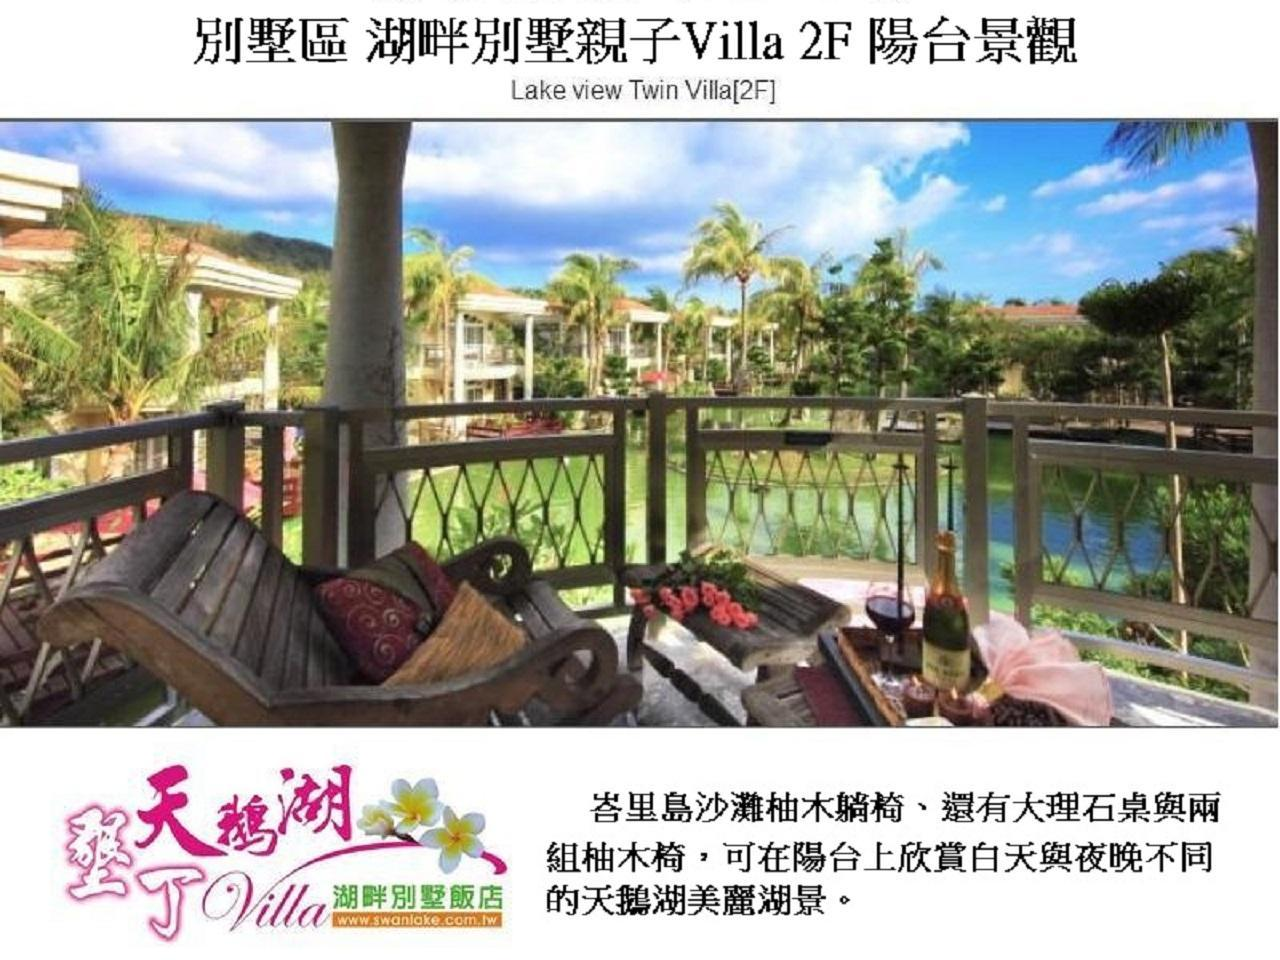 湖景別墅 (Lake View Villa)